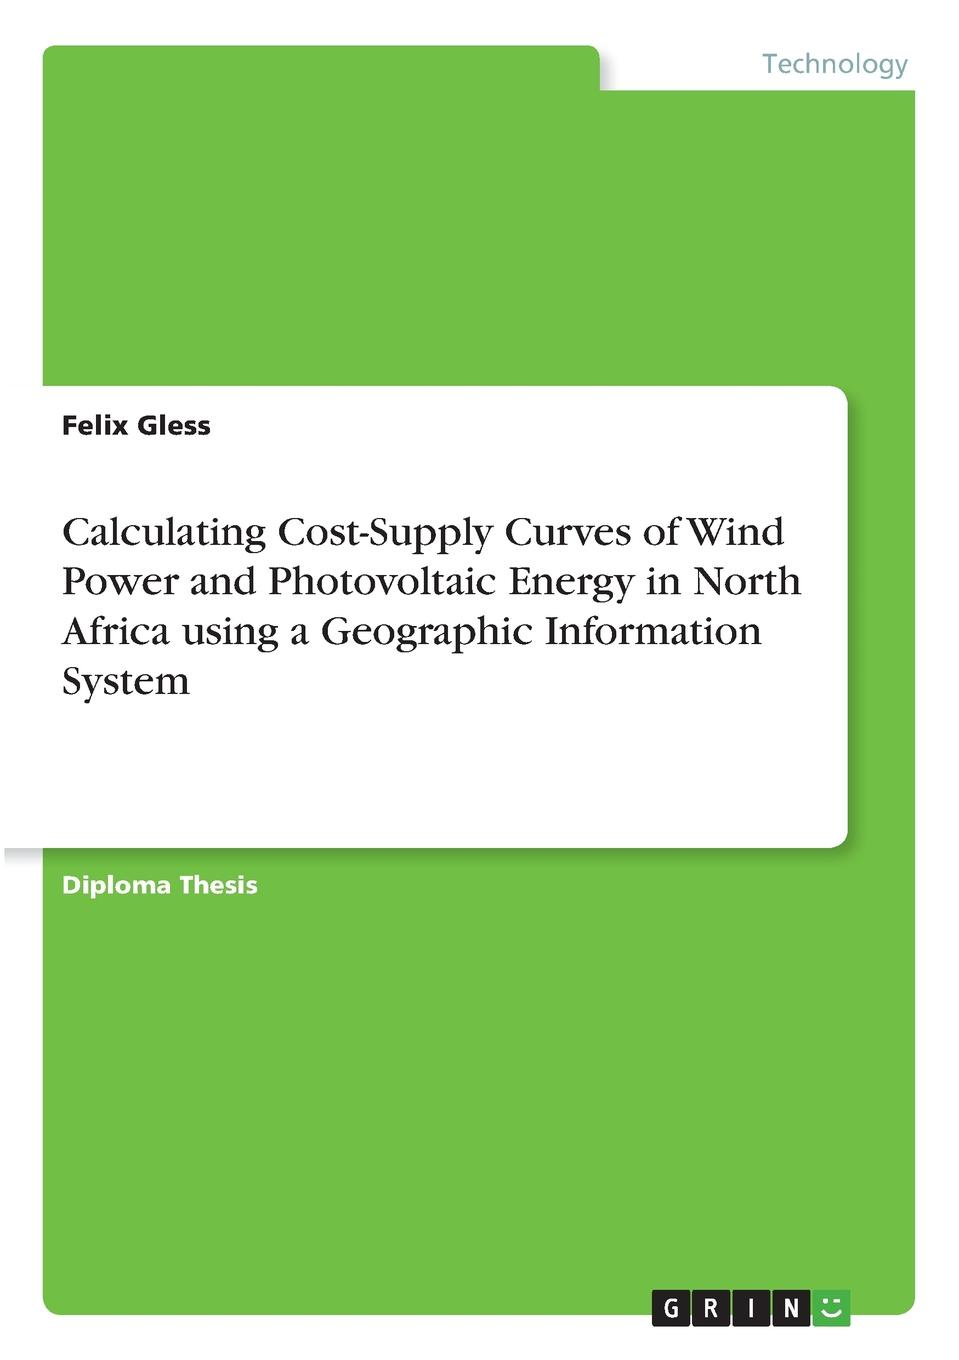 Calculating Cost-Supply Curves of Wind Power and Photovoltaic Energy in North Africa using a Geographic Information System. Felix Gless